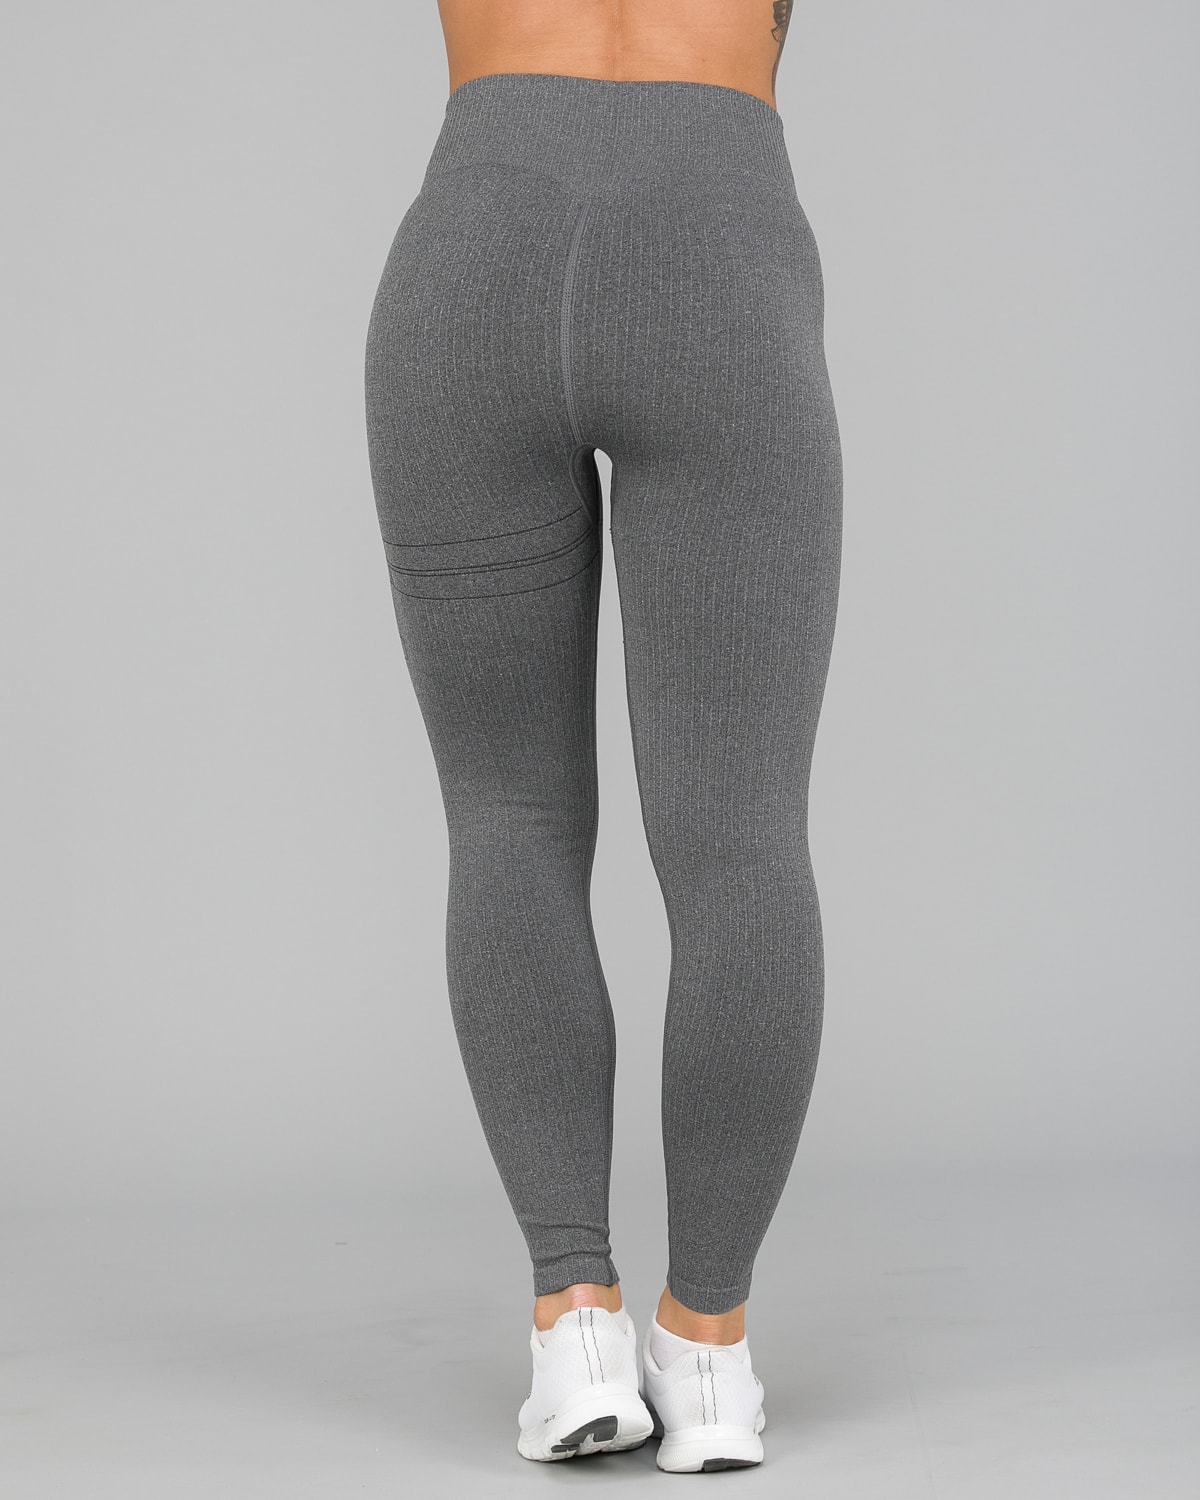 Aim'n Grey Ribbed Seamless Tights3